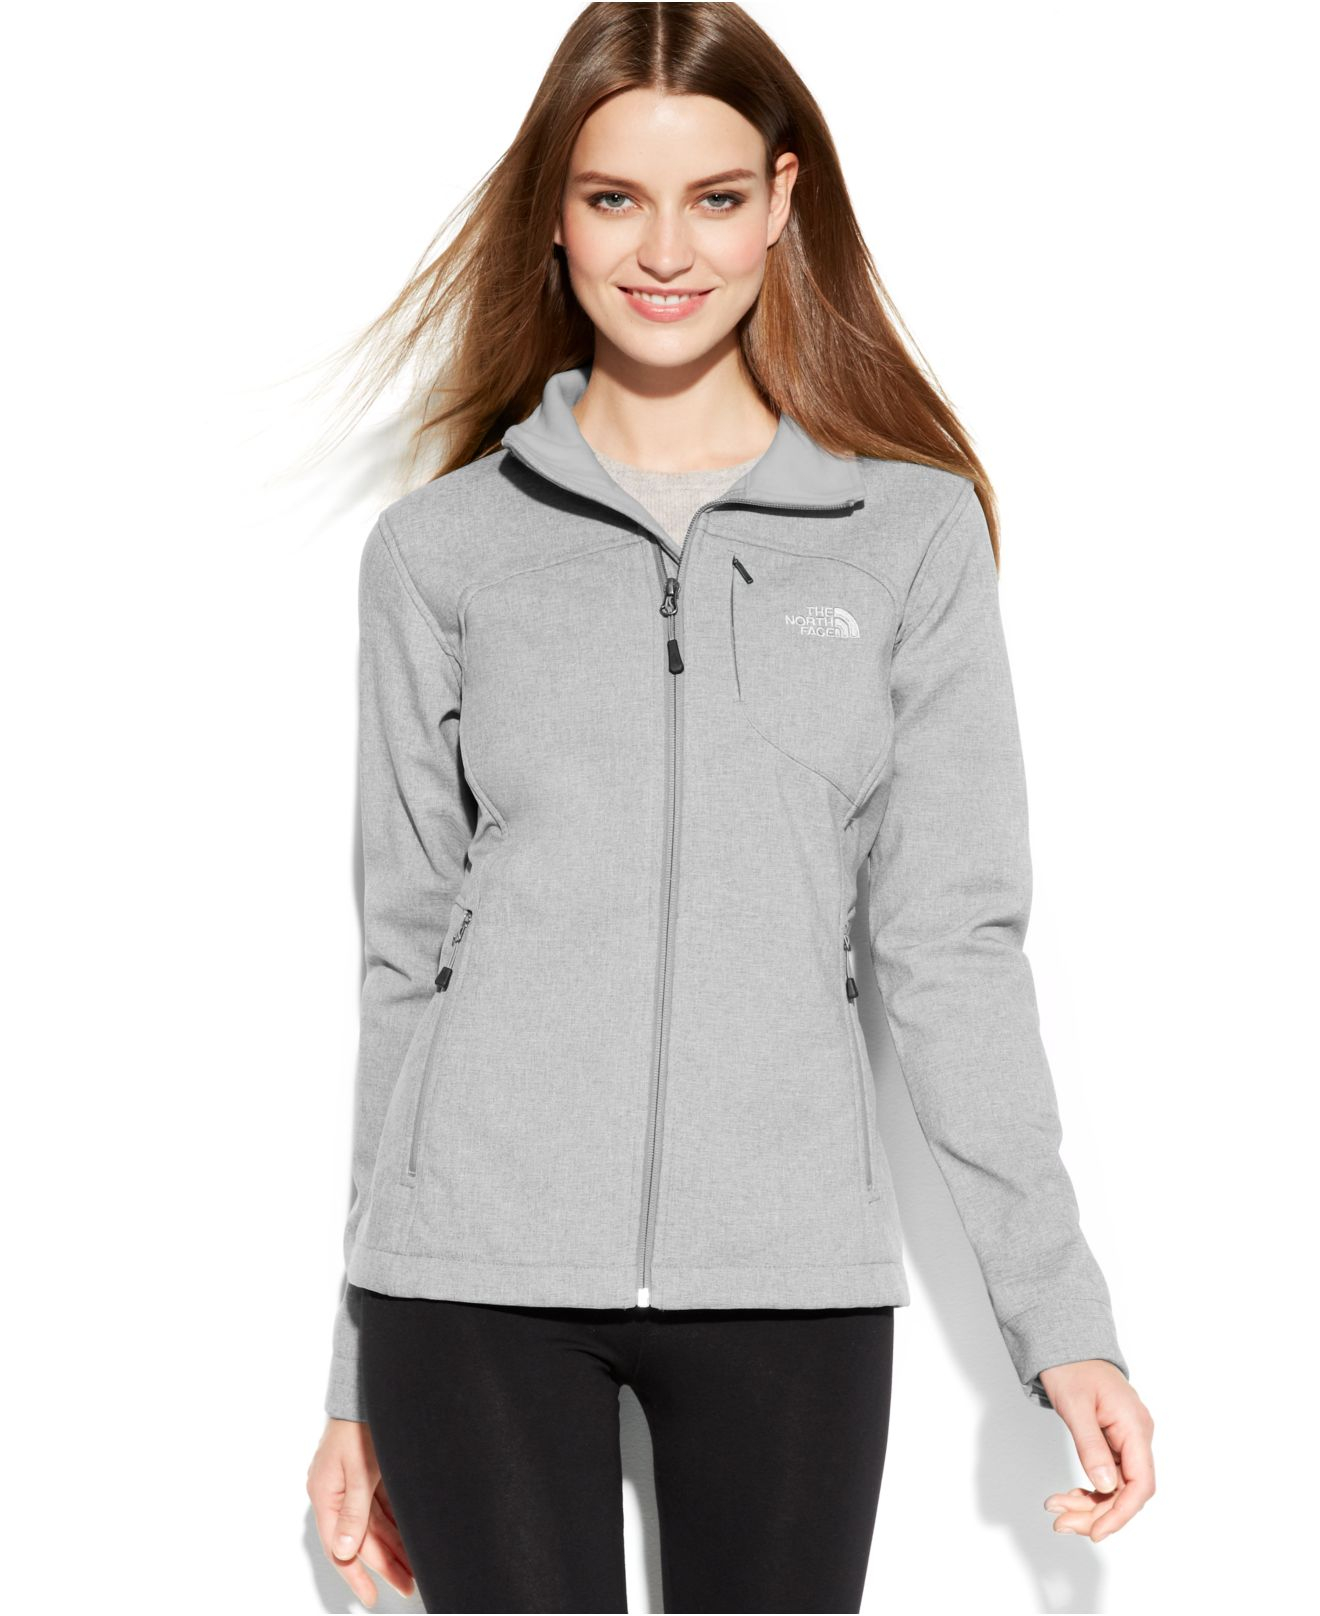 the north face apex bionic soft shell jacket in gray high. Black Bedroom Furniture Sets. Home Design Ideas